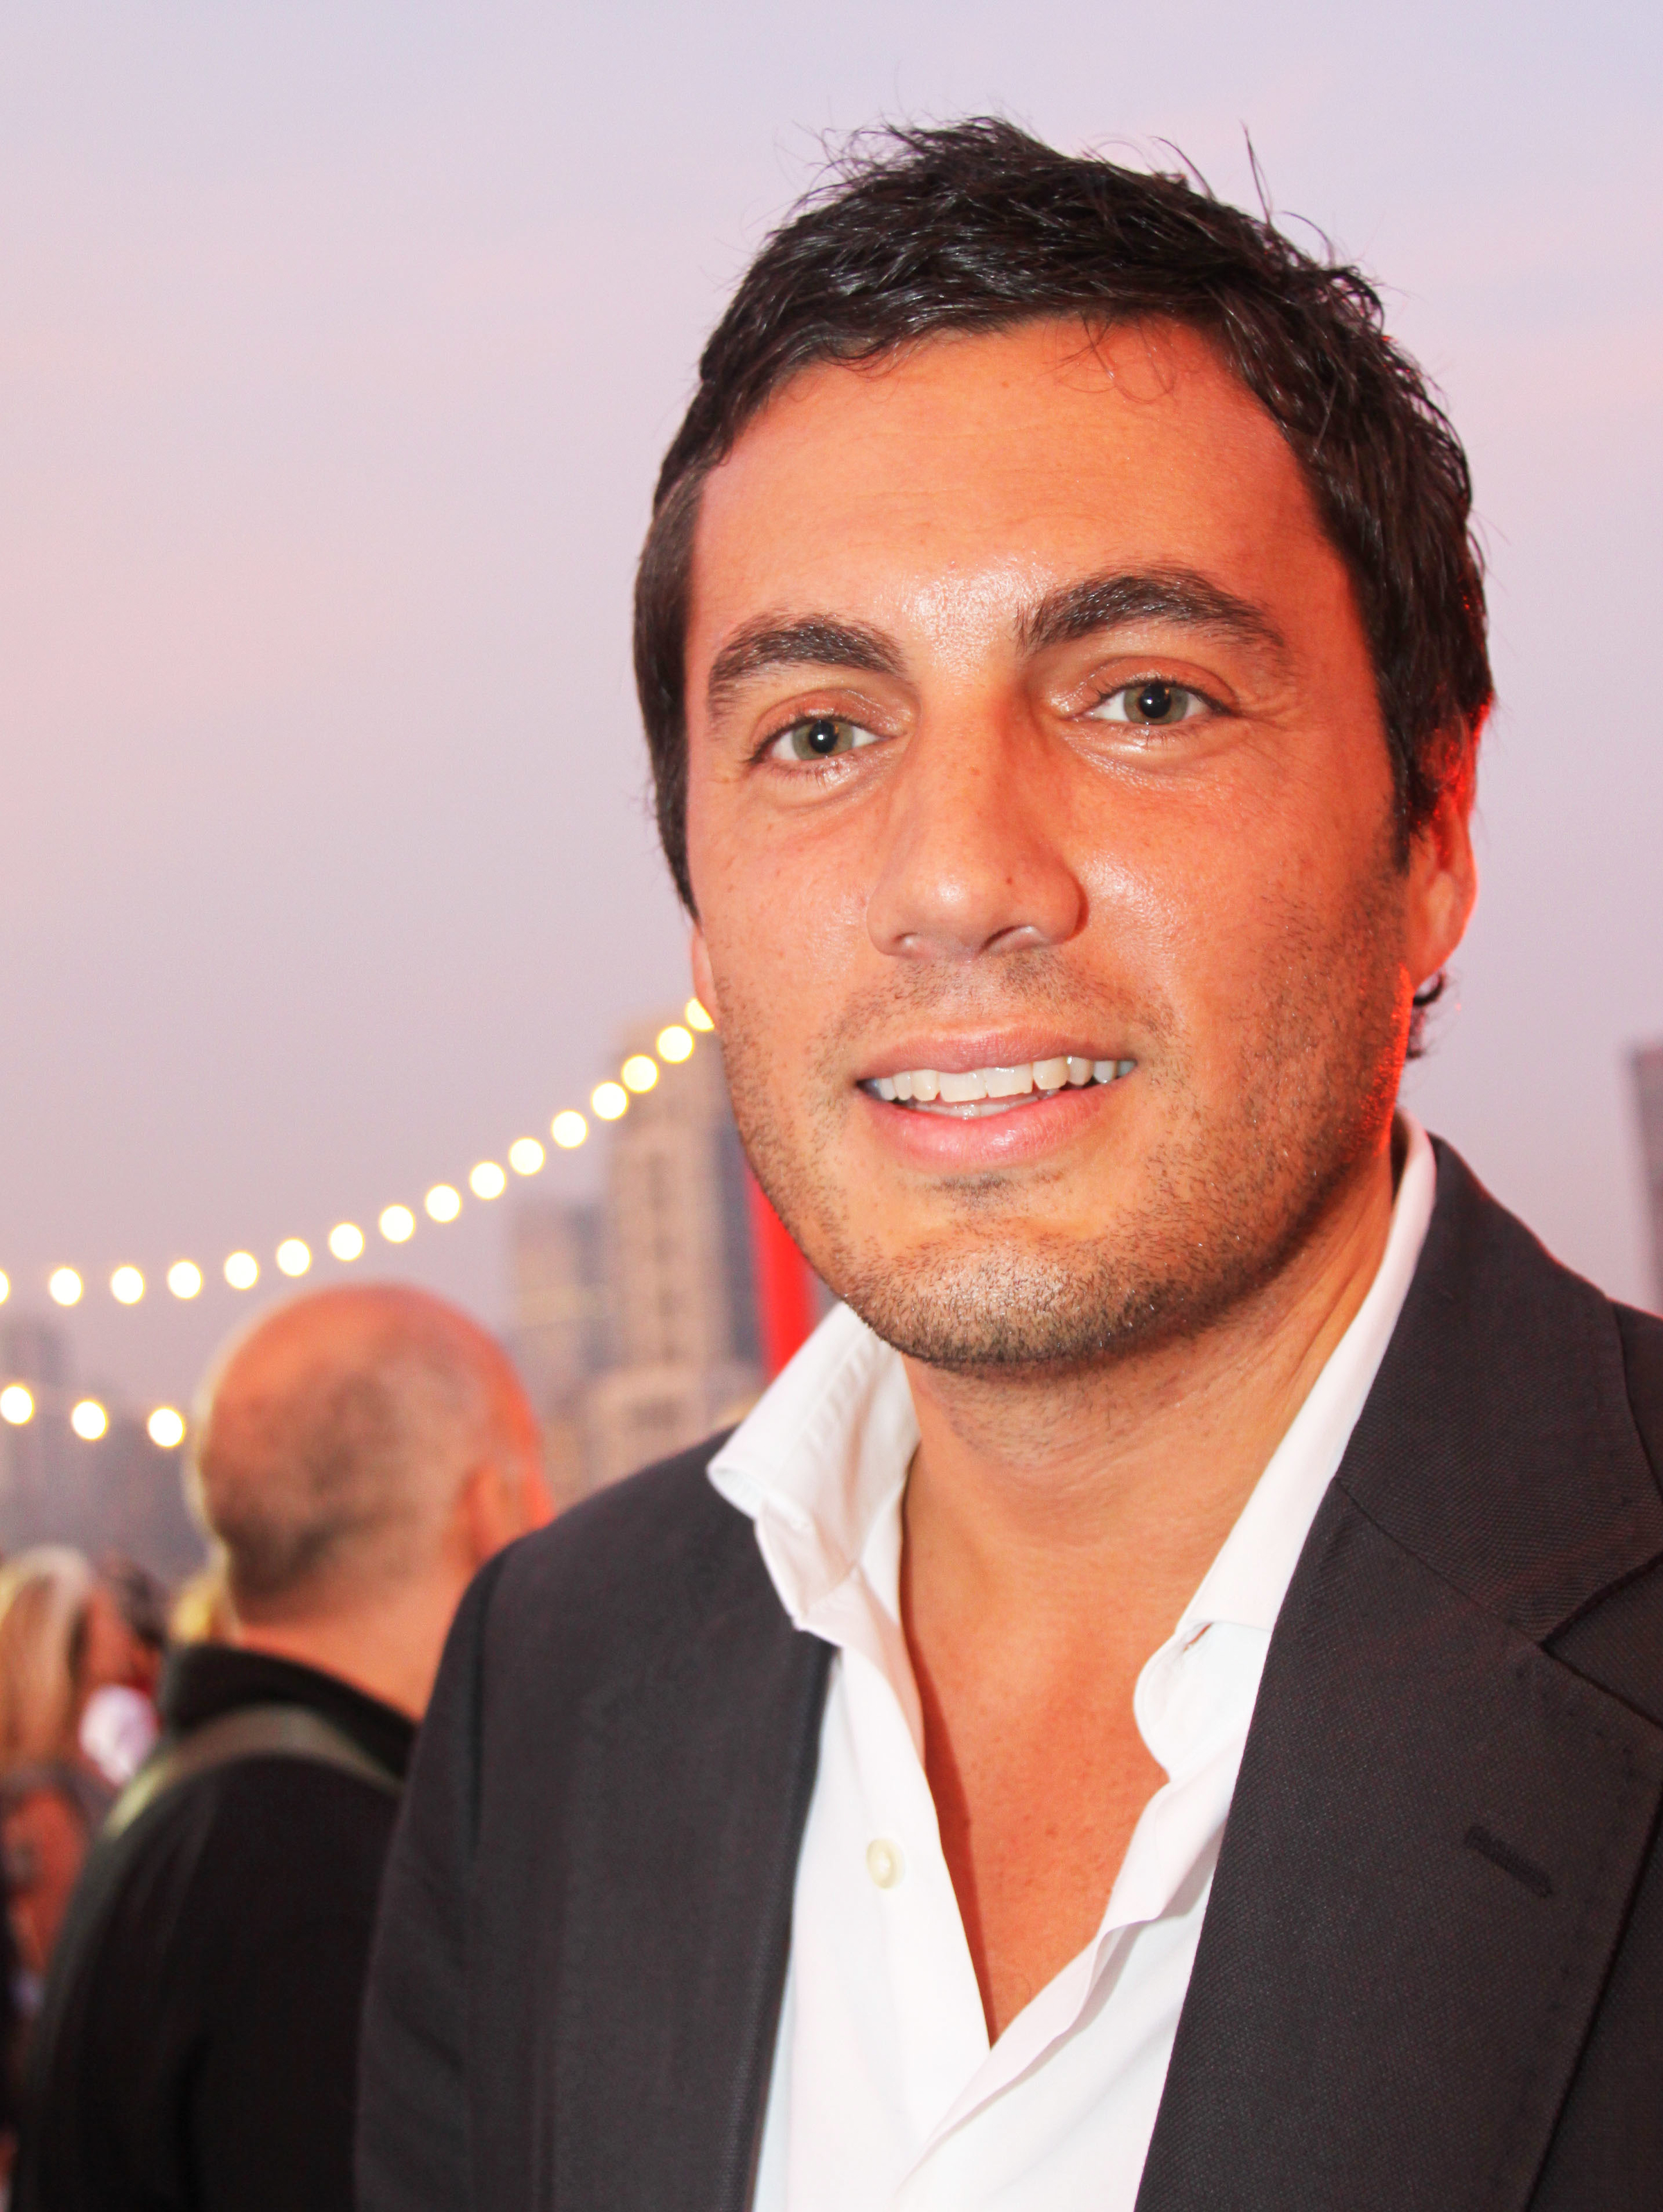 Actor Fabian Basabe Put On Blast For Calling PR Agent A 'N****R B***H' During Art Basel Event